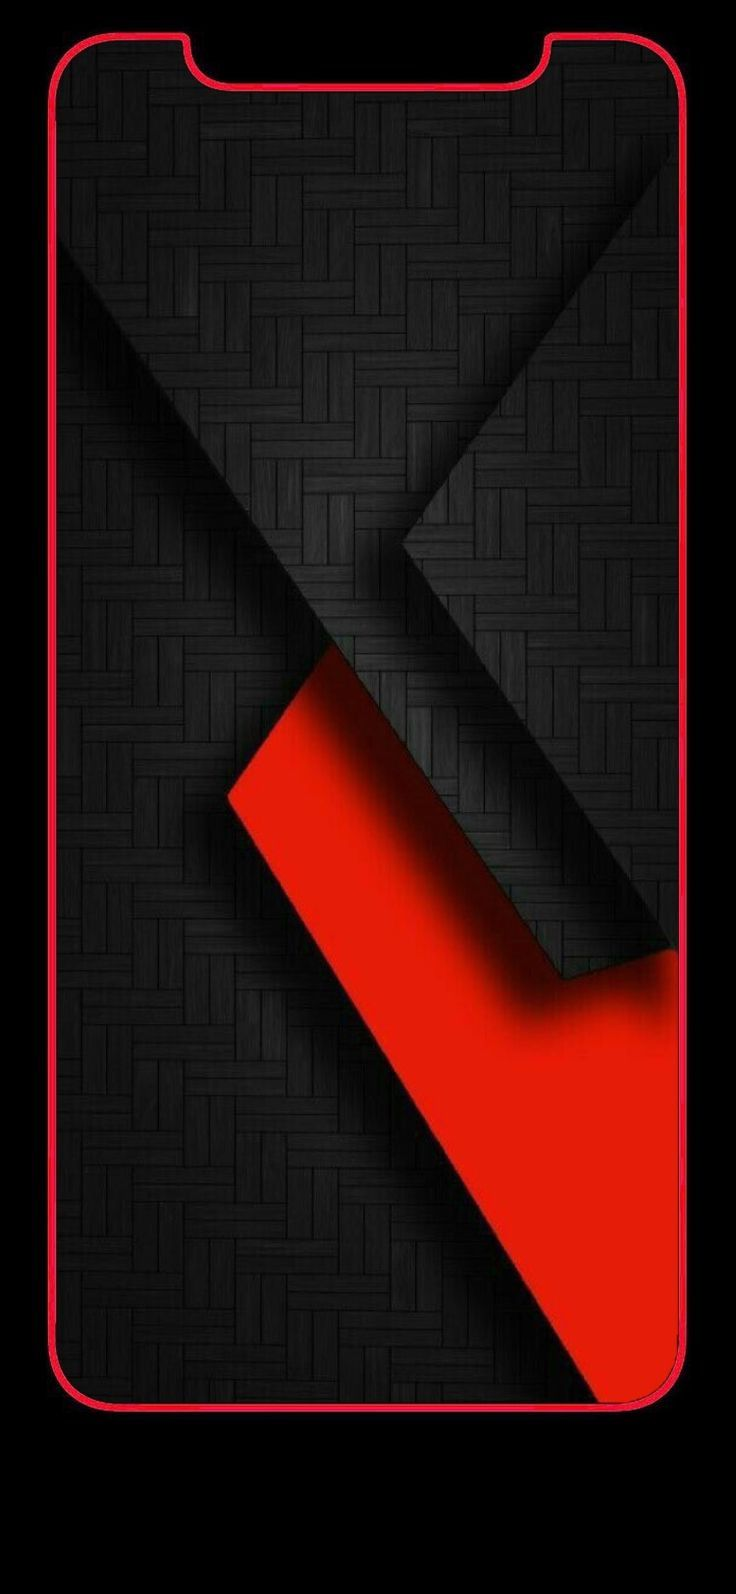 Good Looking Wallpaper Red Black Light Line Design Material Property Rectangle Font Carmine Triangle 1517004 Wallpaperkiss